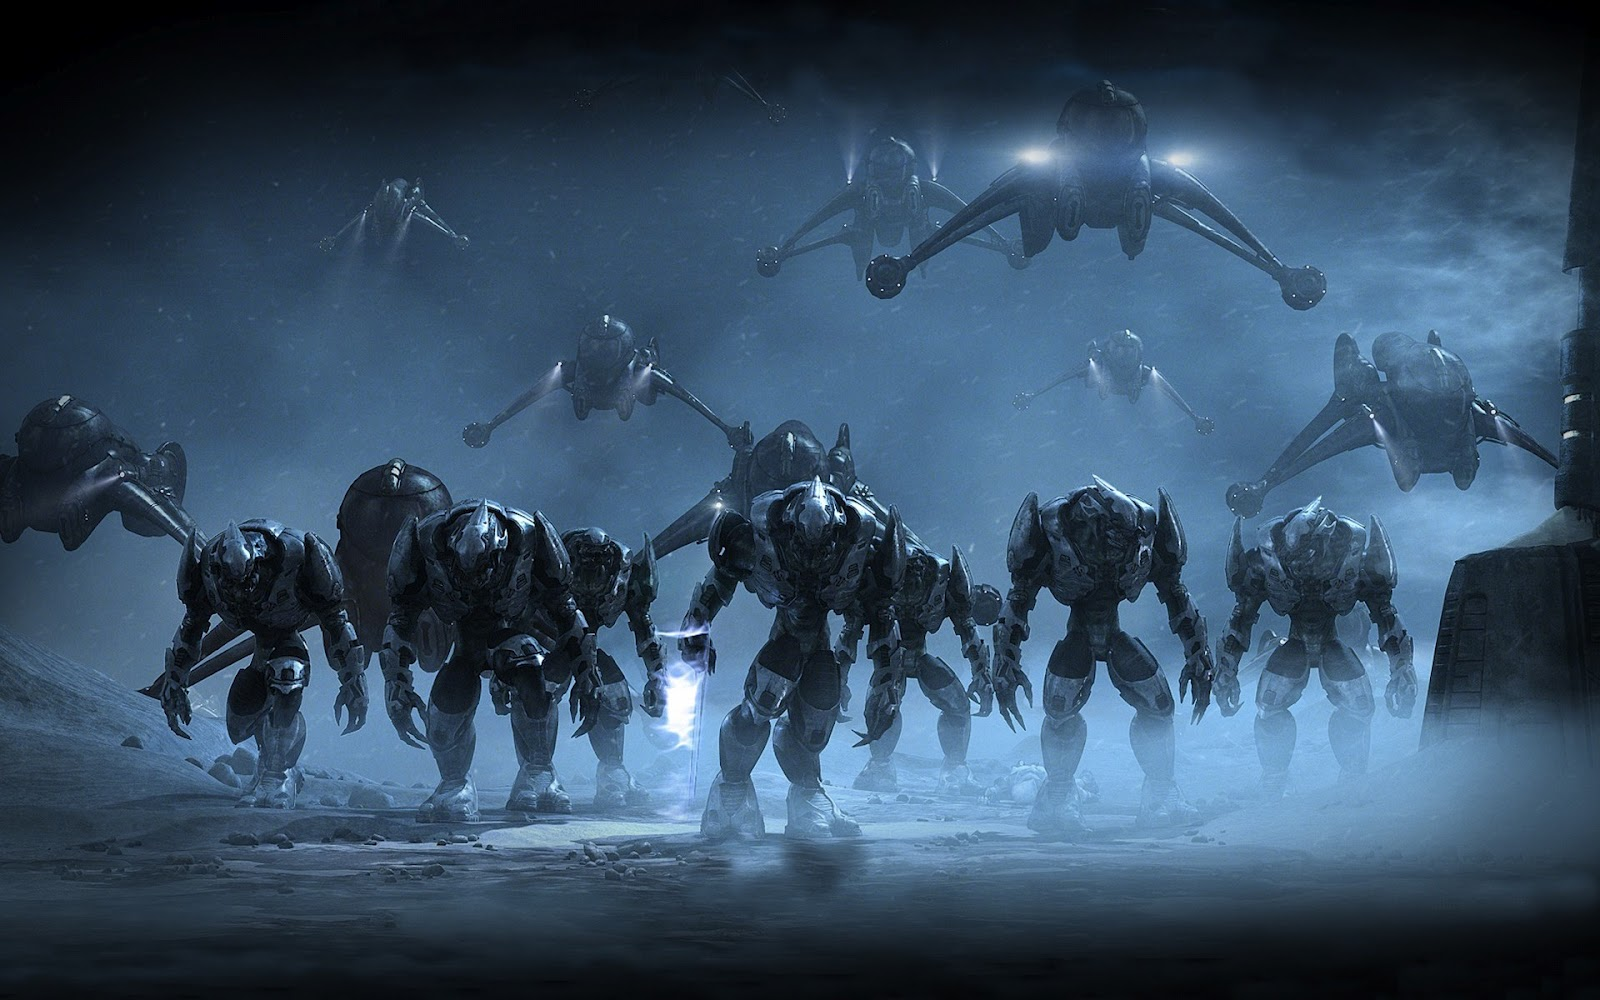 halo wallpaper background bungie xbox 360 microsoft fps first person 1600x1000